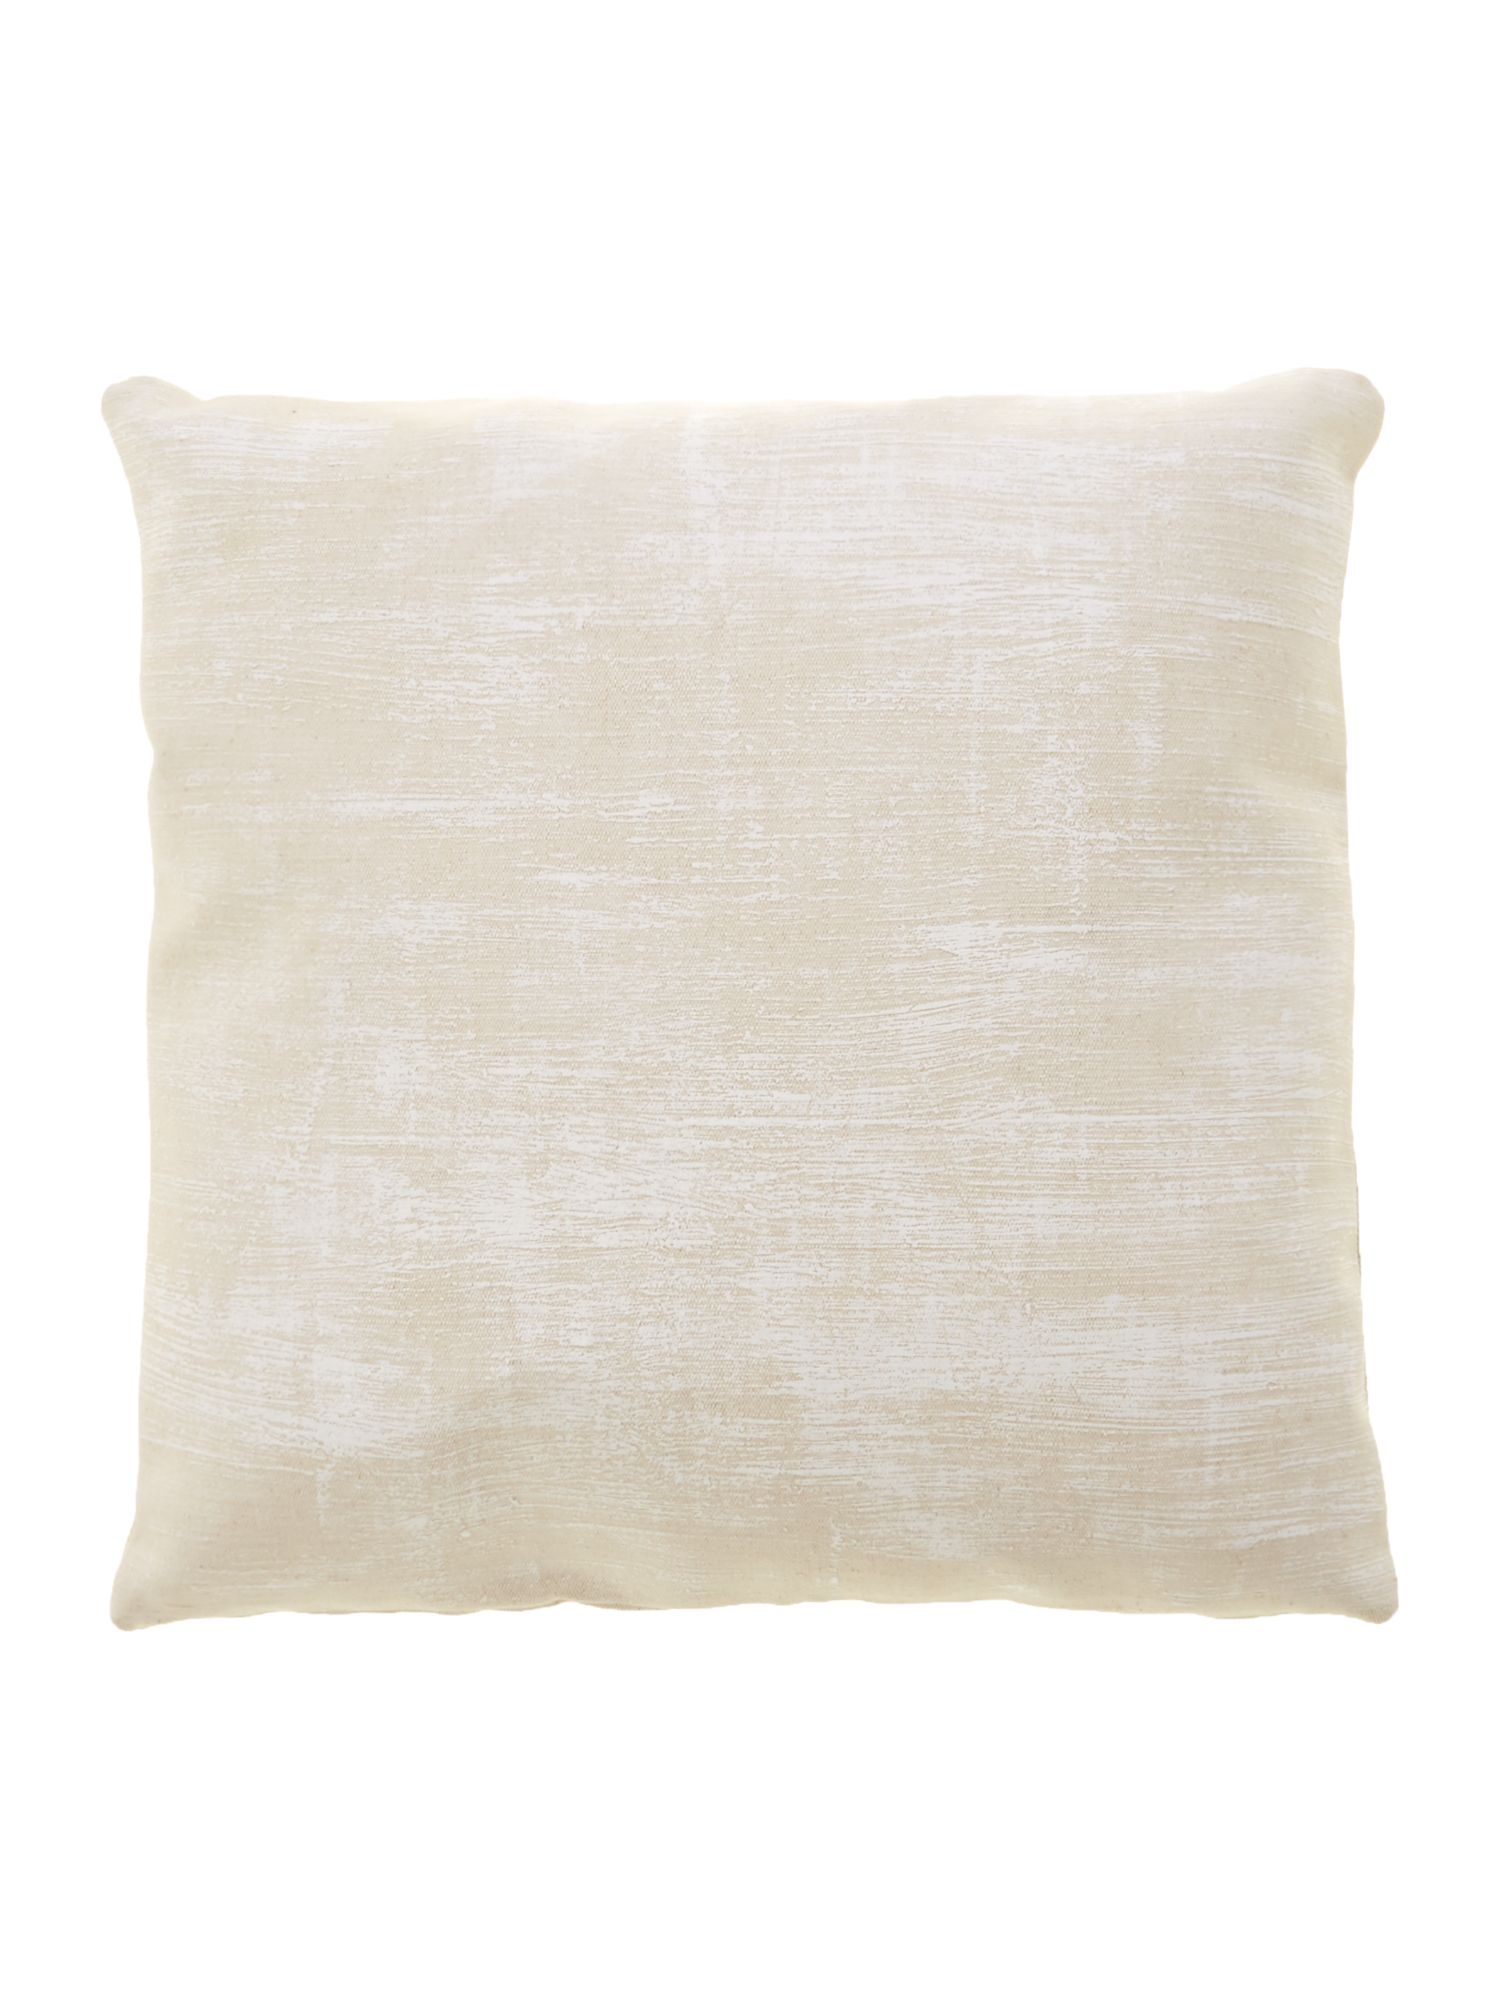 Leblon foiled organic jute pillow in white 45x45